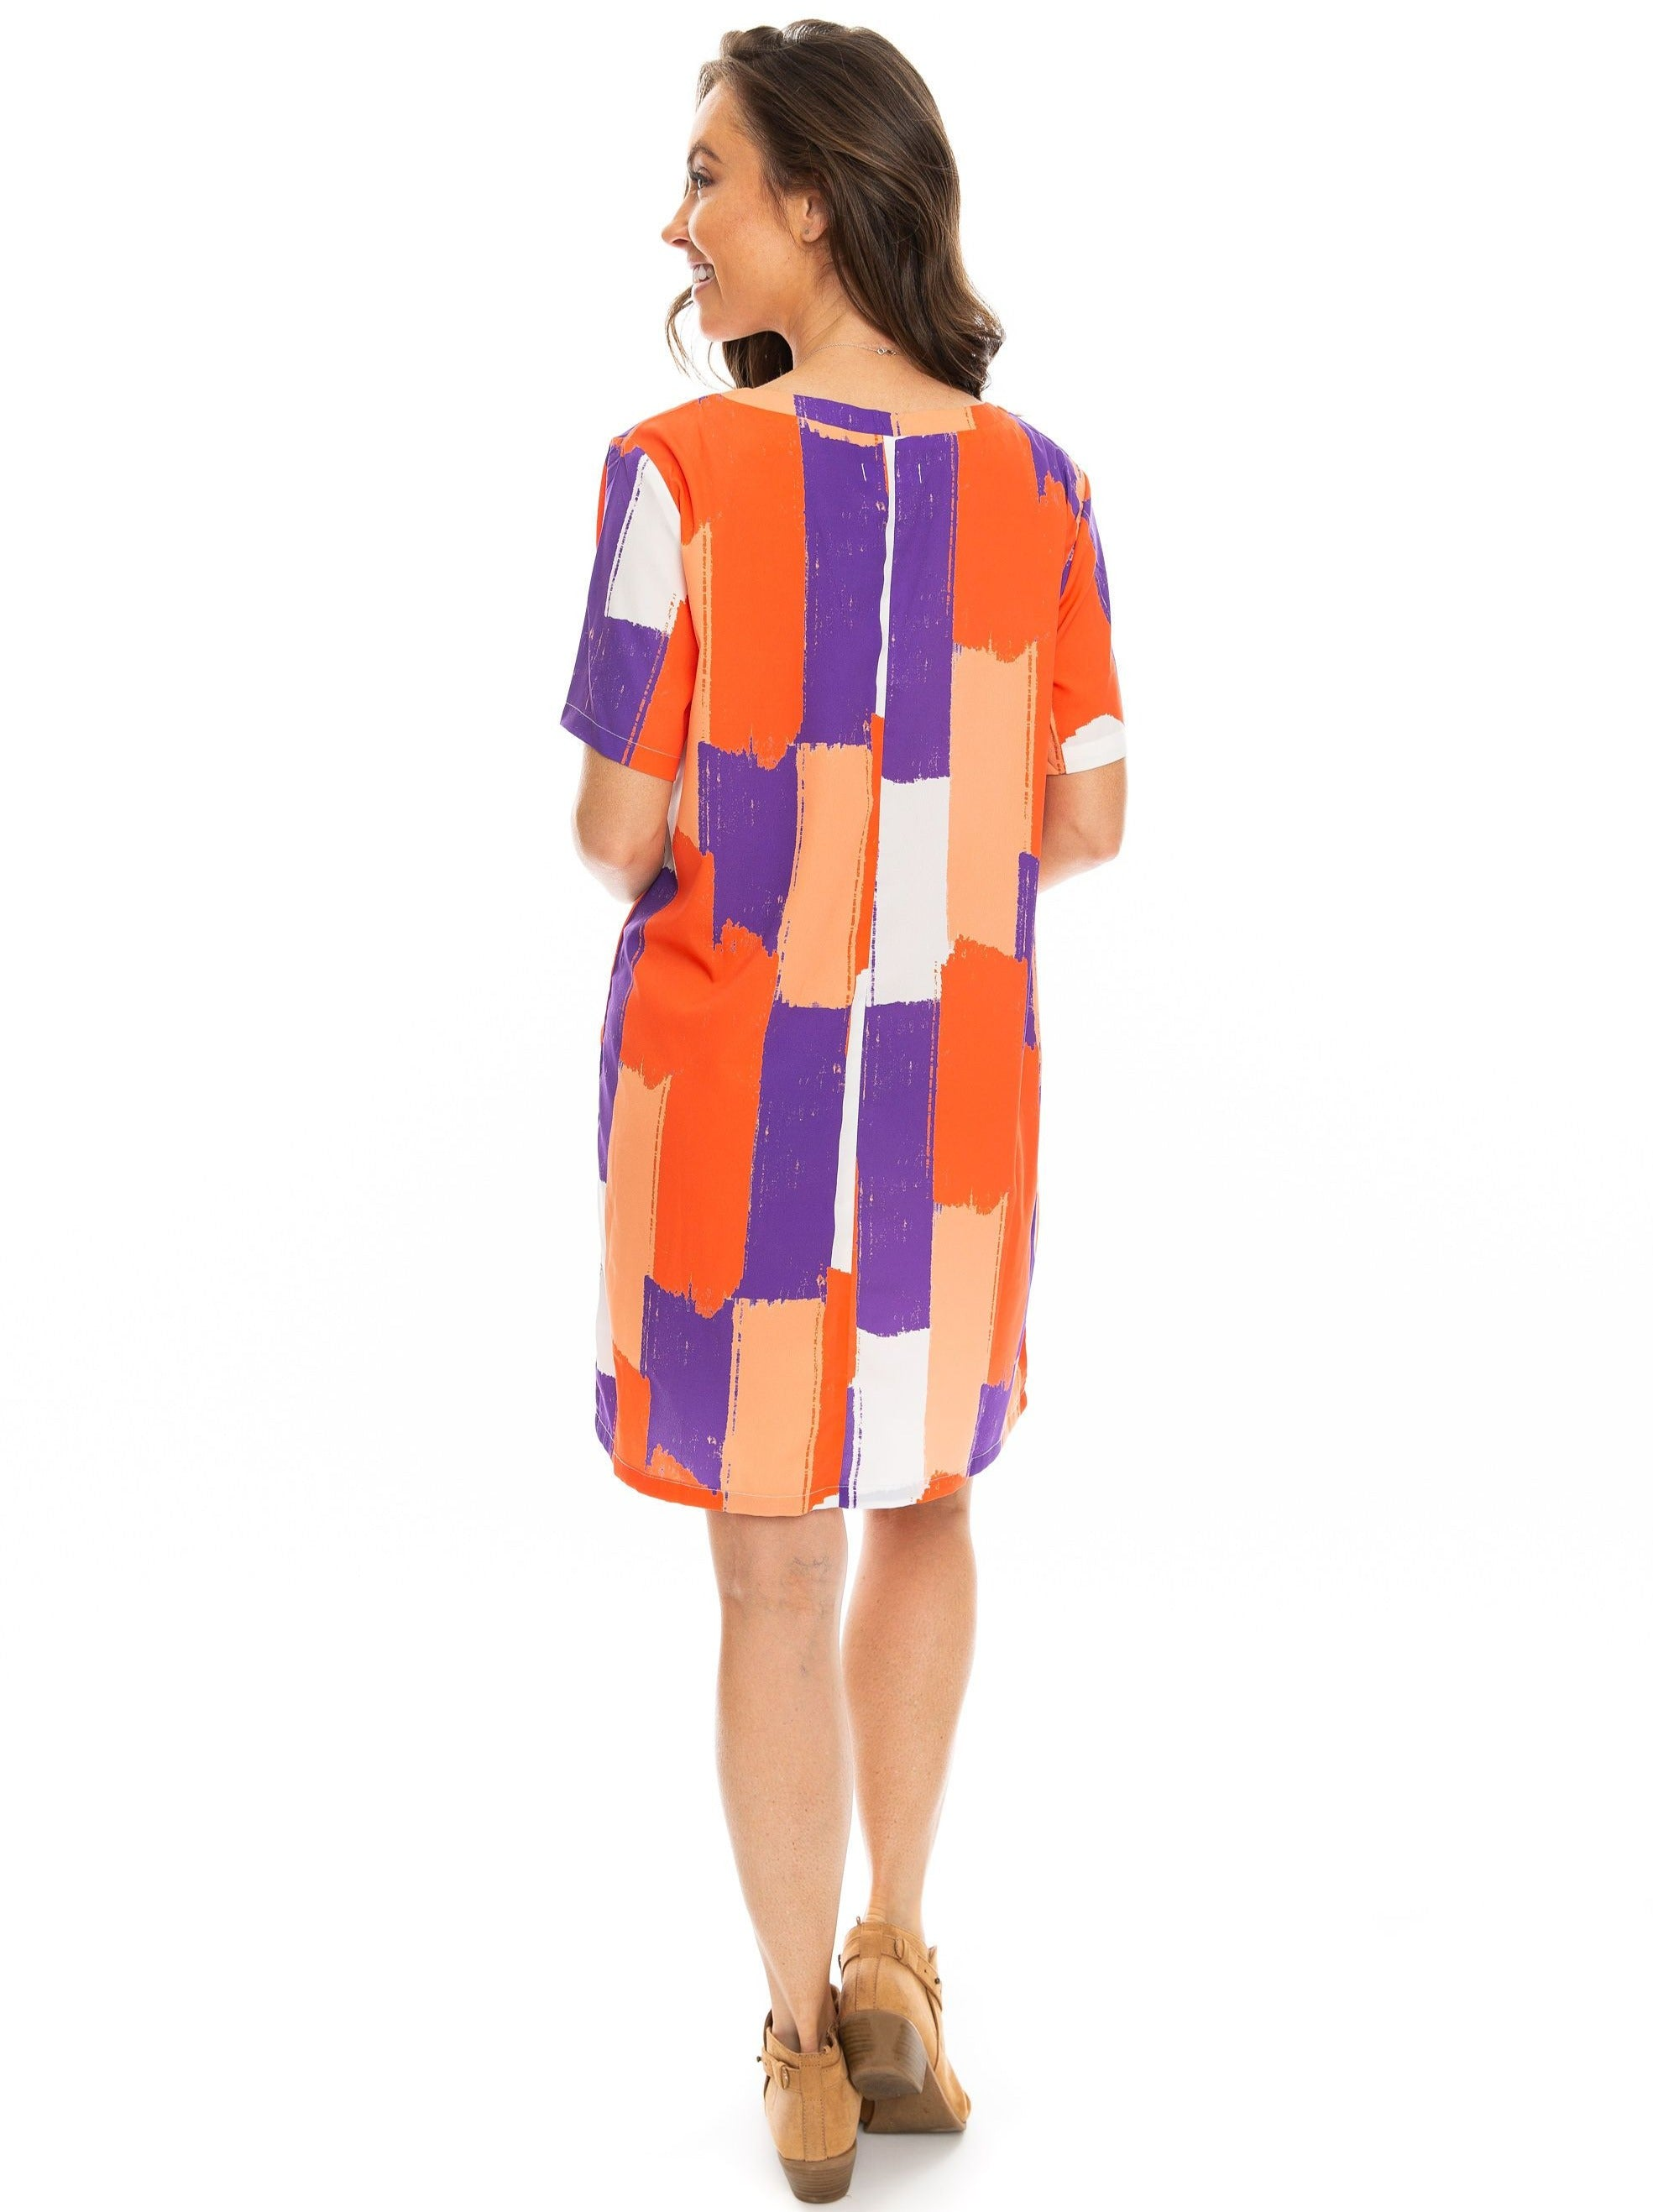 The Brush Stripes Dress